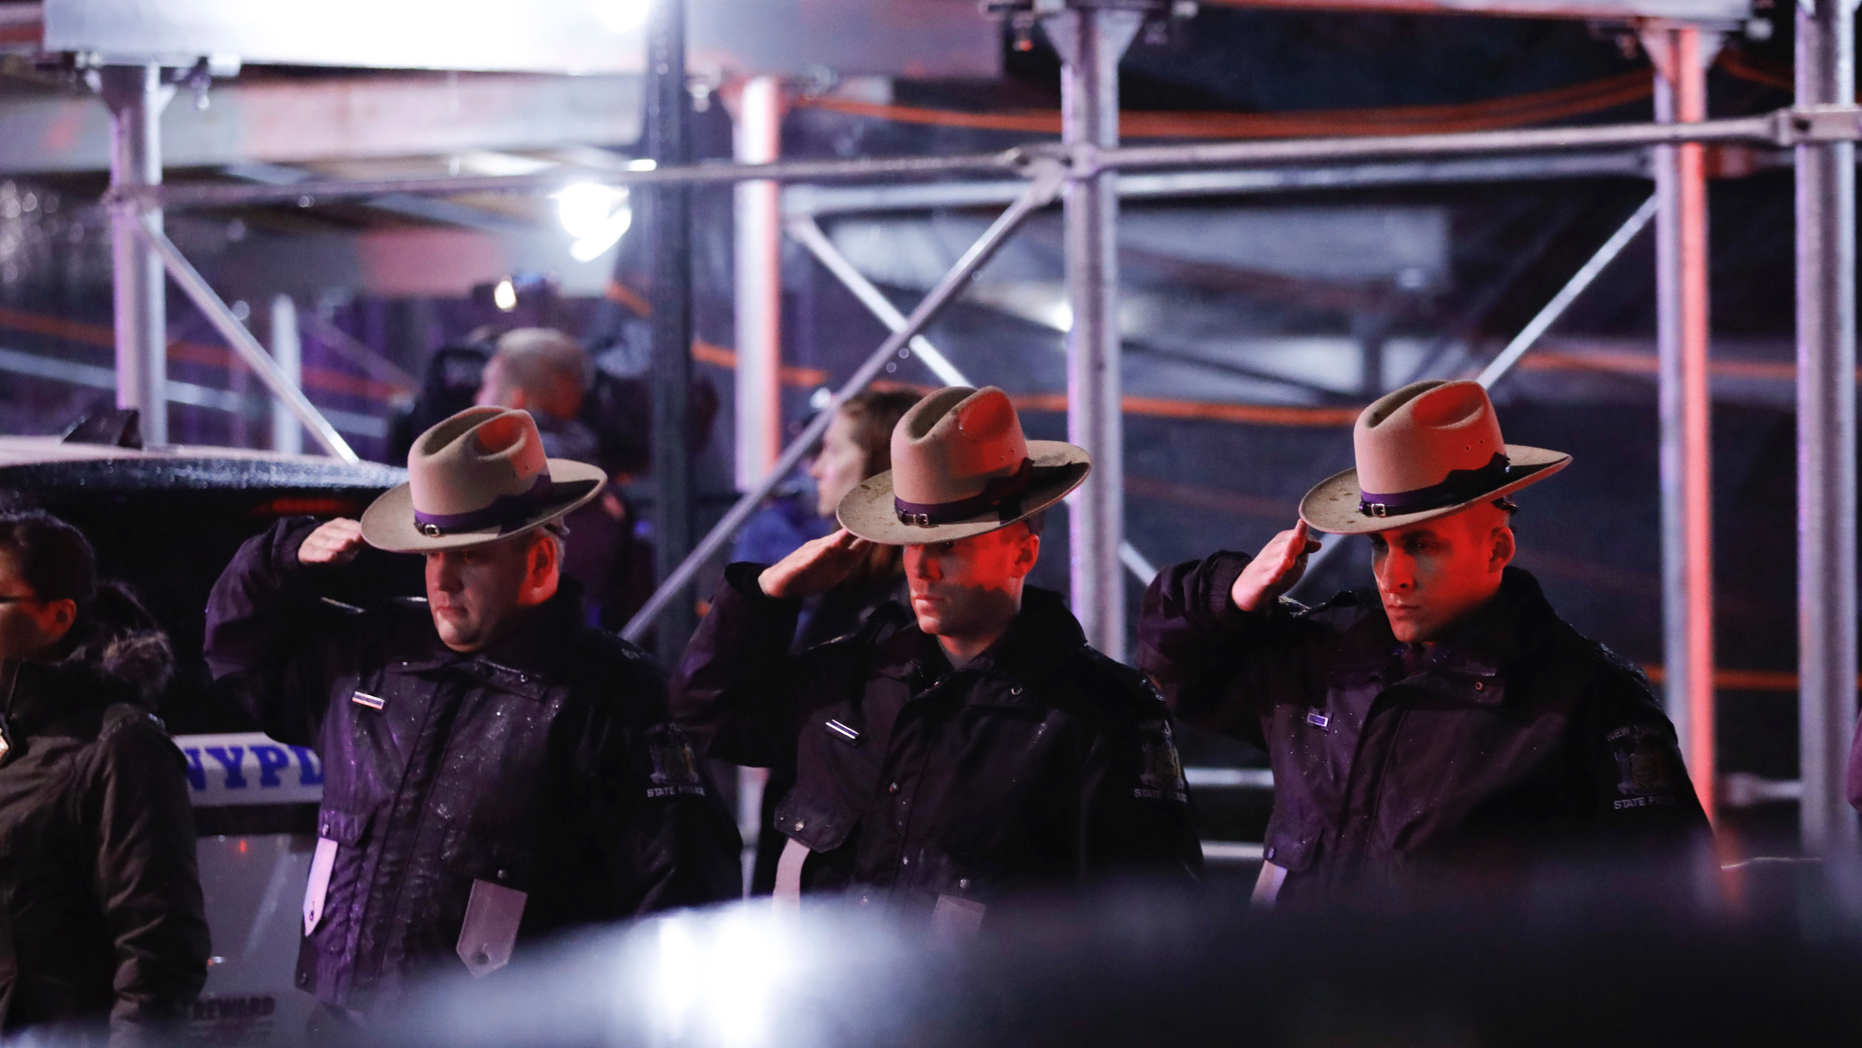 Officers salute a procession as the remains of slain Detective Brian Simonsen are removed from Jamaica Hospital Medical Center Tuesday, Feb. 12, 2019, in the Queens borough of New York. The NYPD detective and a NYPD sergeant were shot while responding to an armed robbery at a T-Mobile store in Queens. (AP Photo/Kevin Hagen)